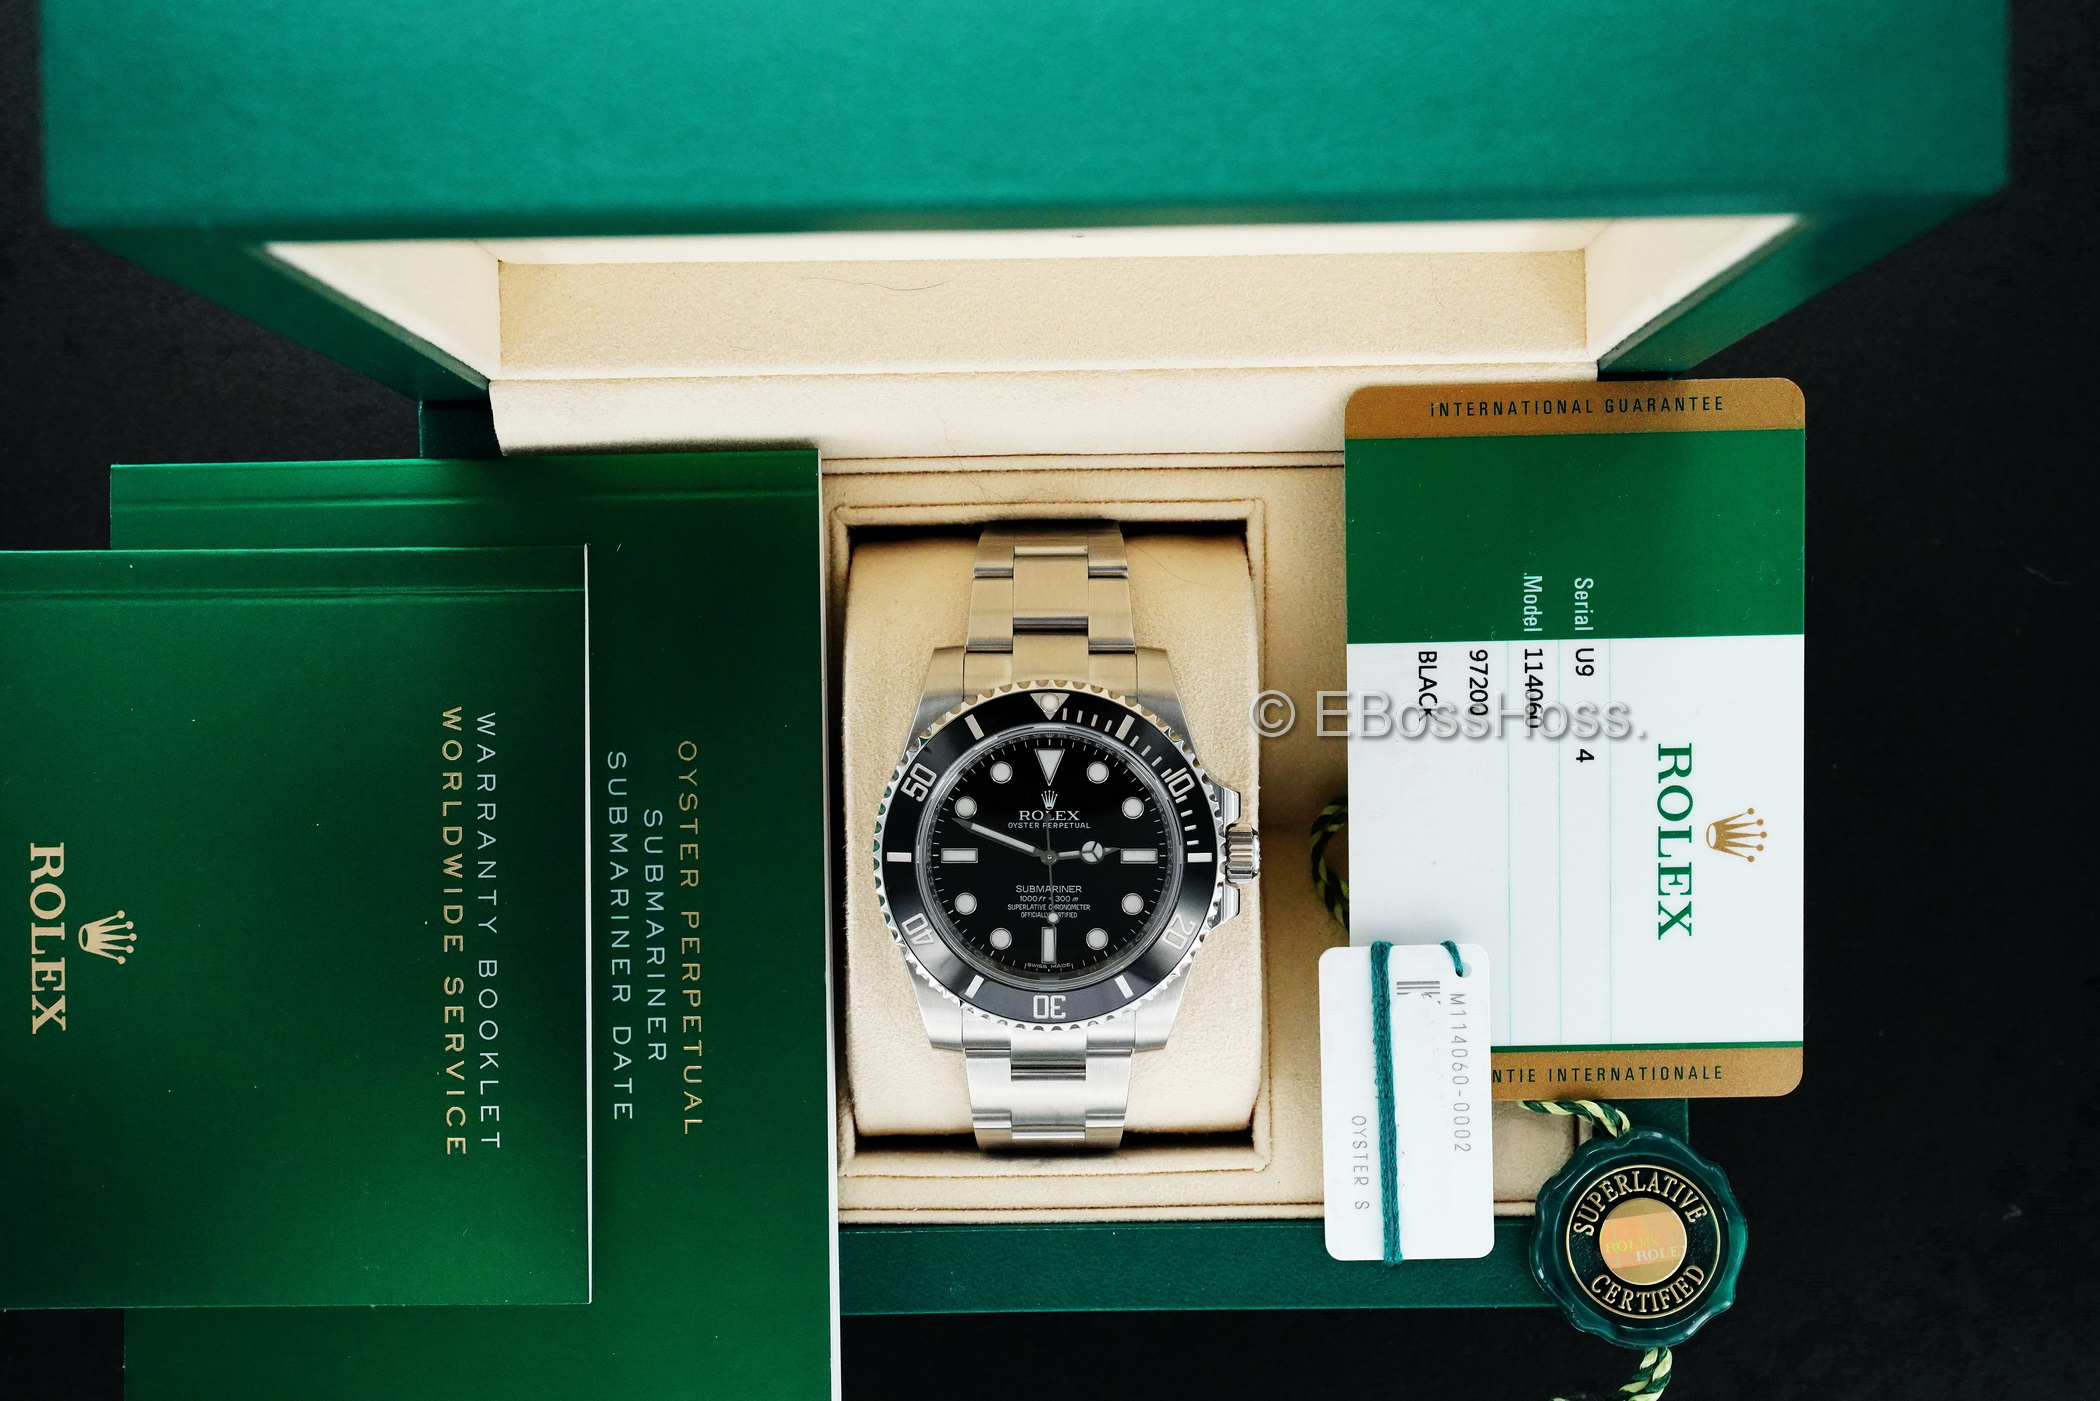 Stainless-Steel No-Date Submariner - 114060LN